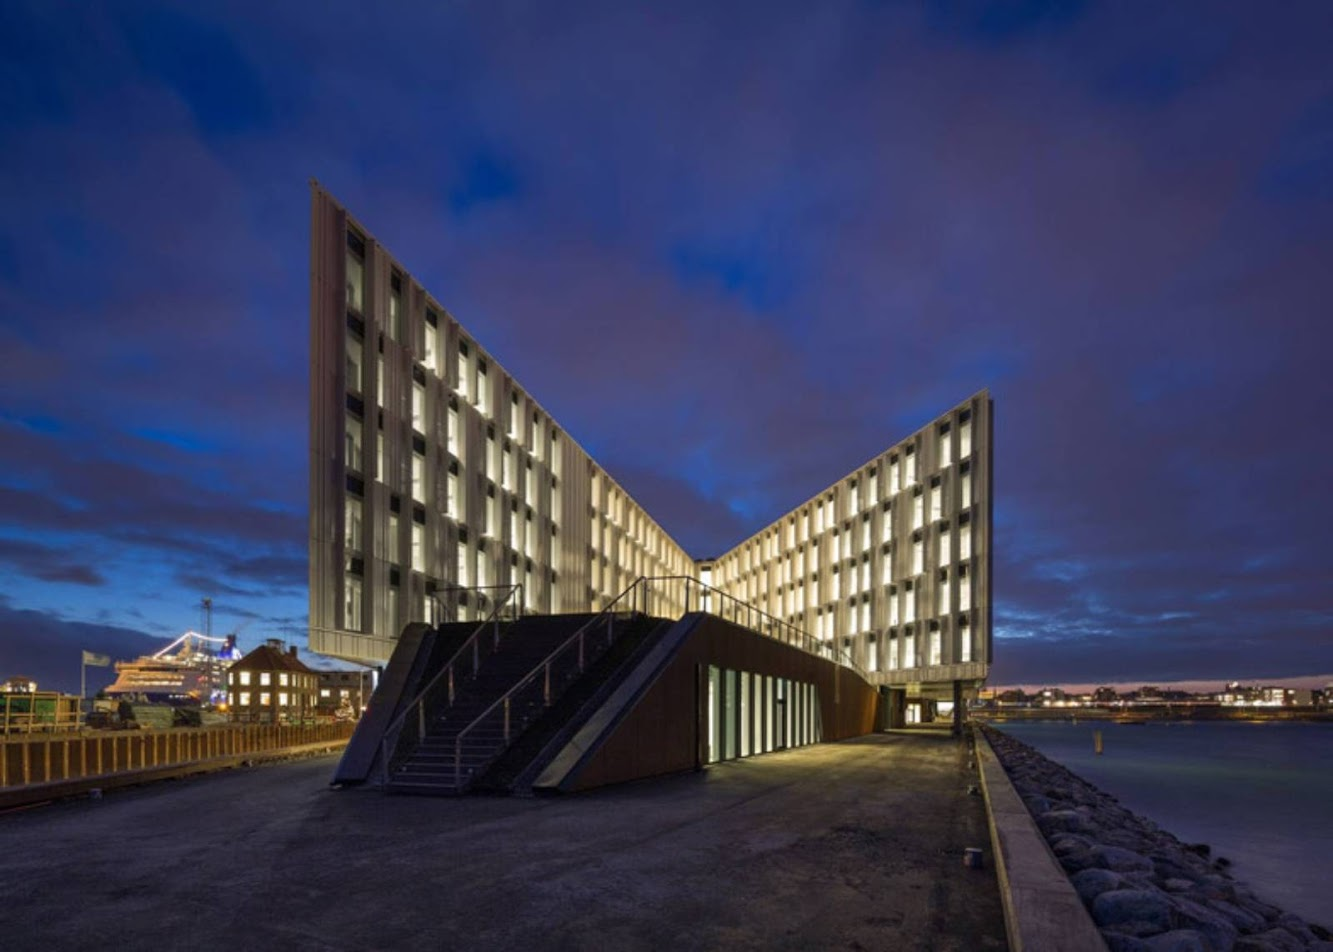 Copenaghen, Danimarca: Un City by 3Xn Architects